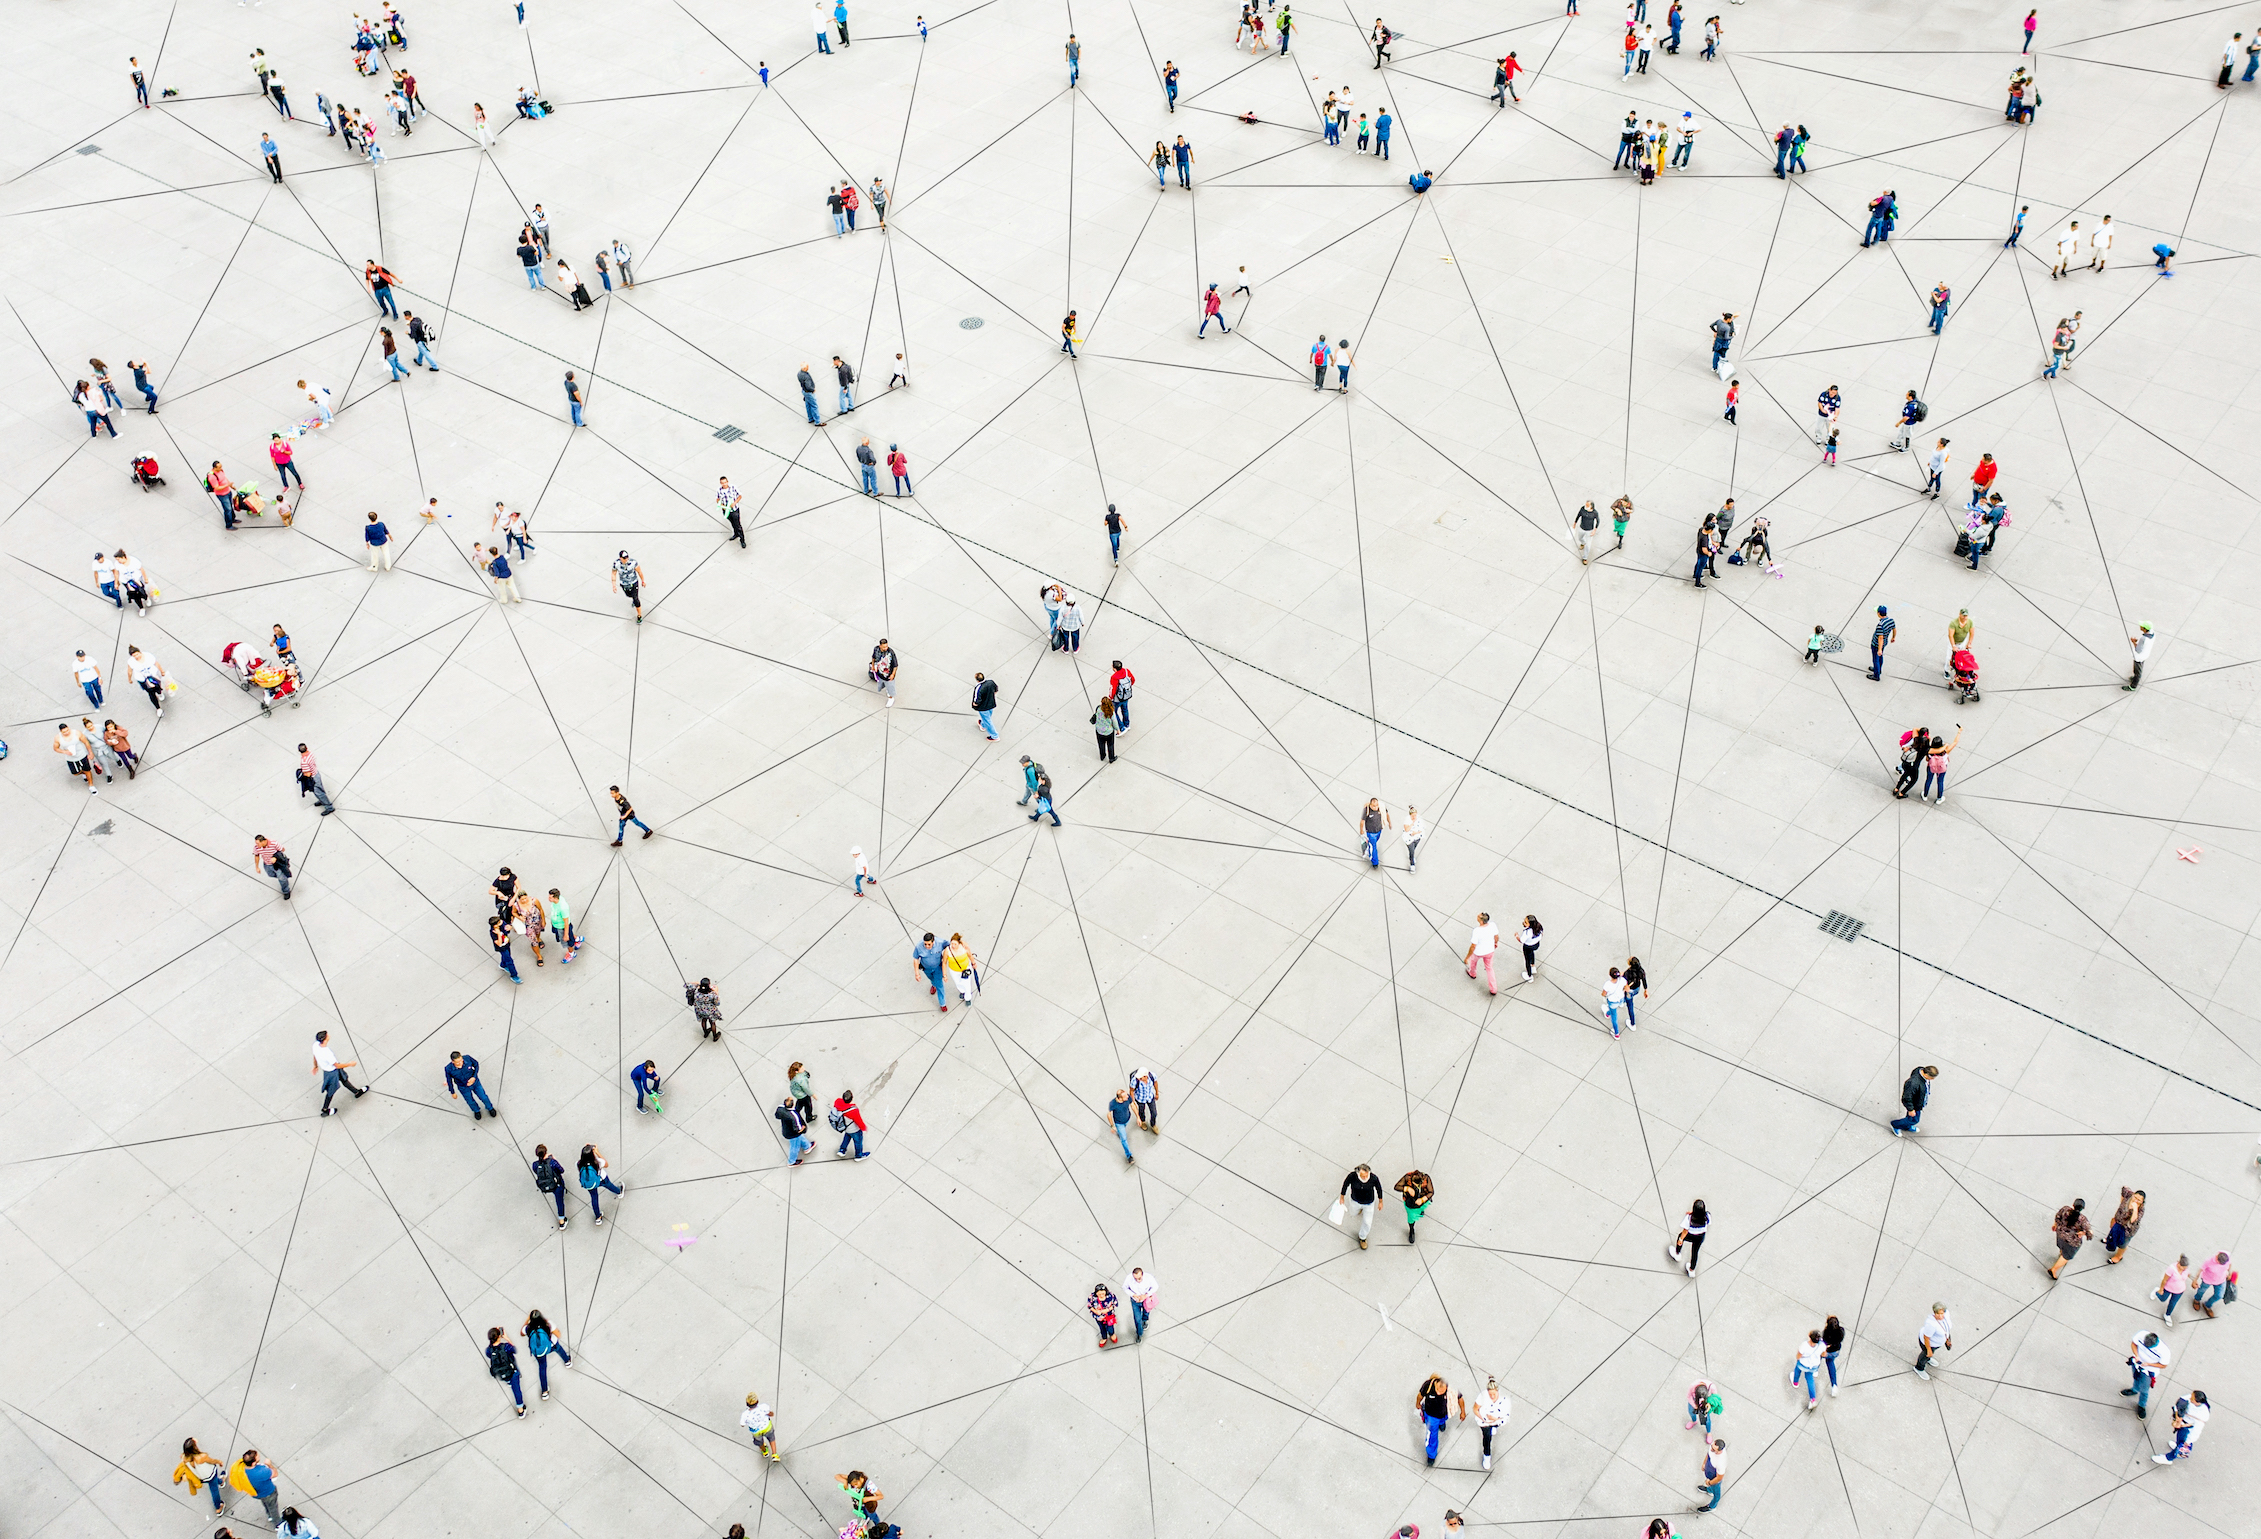 an artistic rendered image of groups of people connected by a network